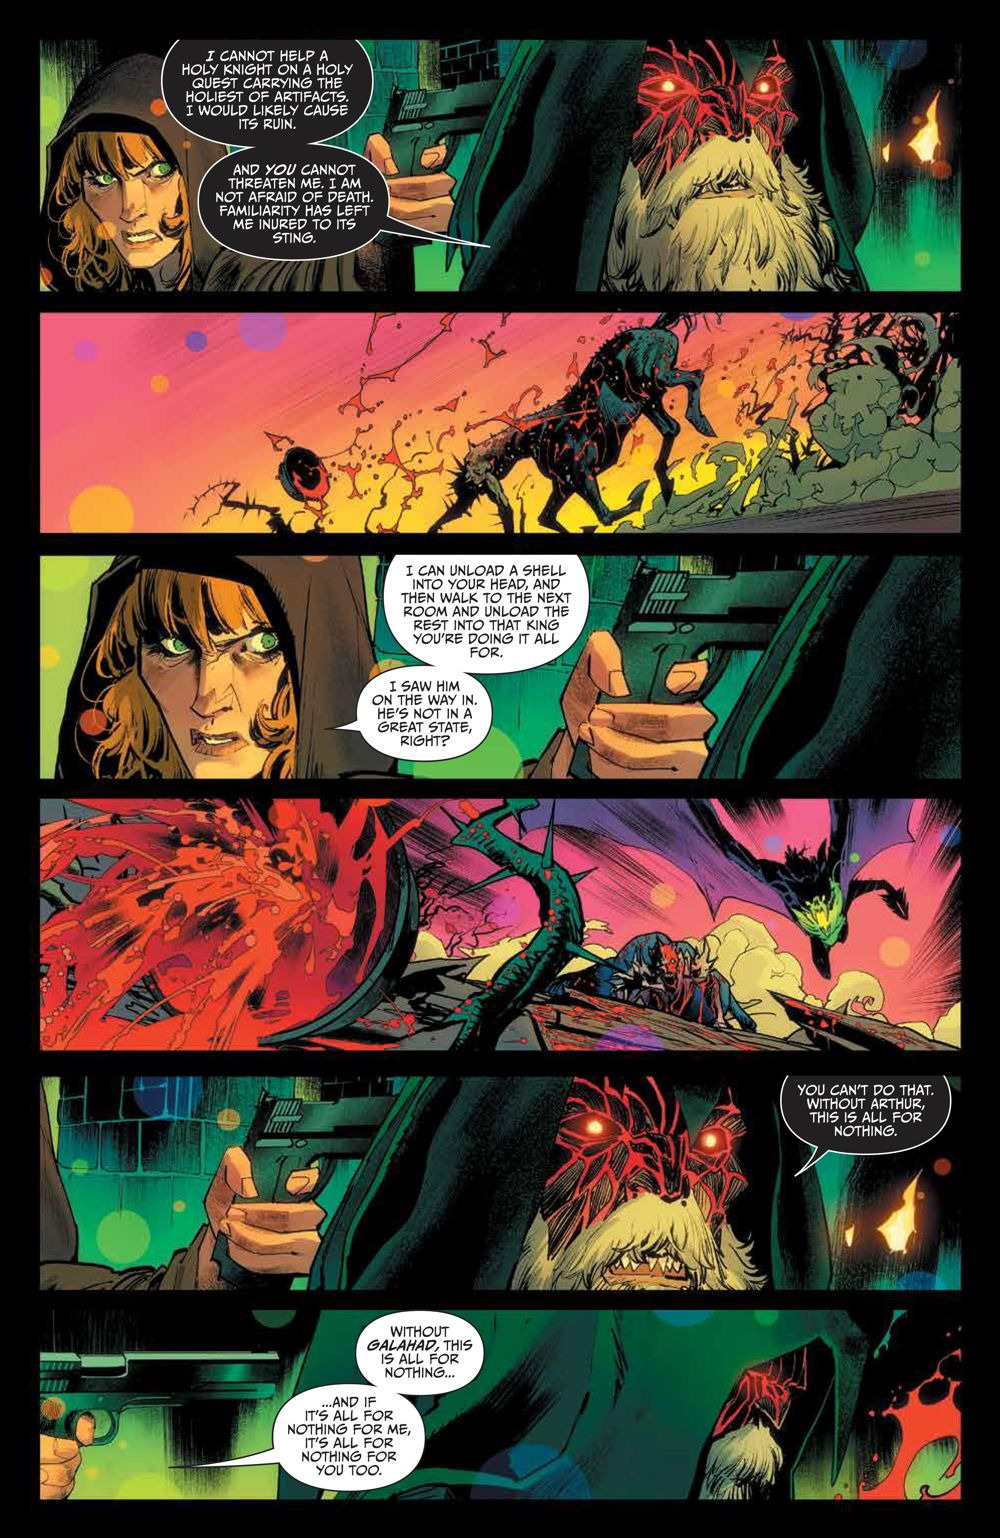 OnceFuture_018_PRESS_5 ComicList Previews: ONCE AND FUTURE #18